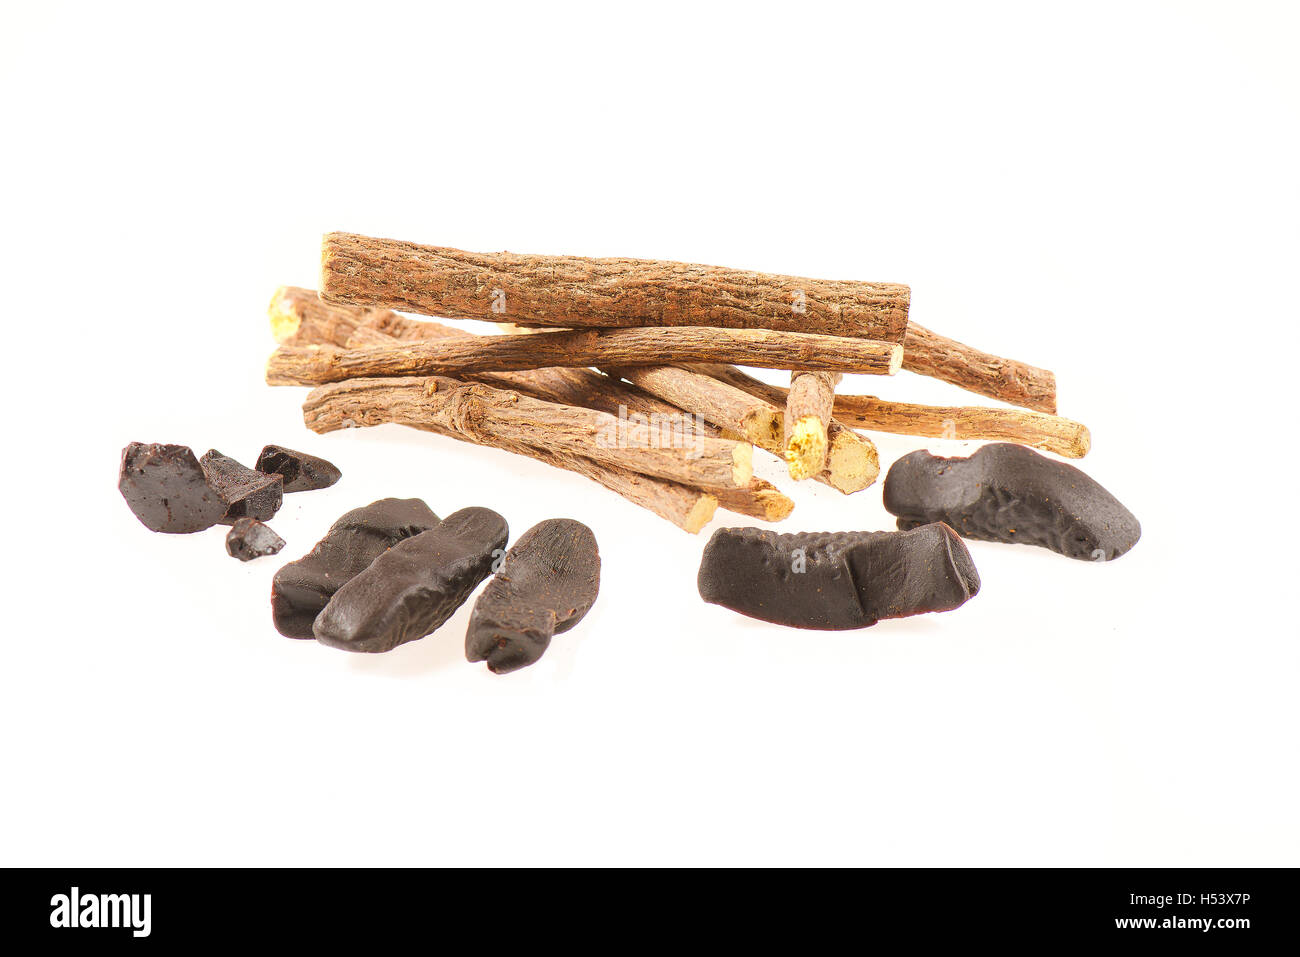 Liquorice sticks and candy on white background - Stock Image